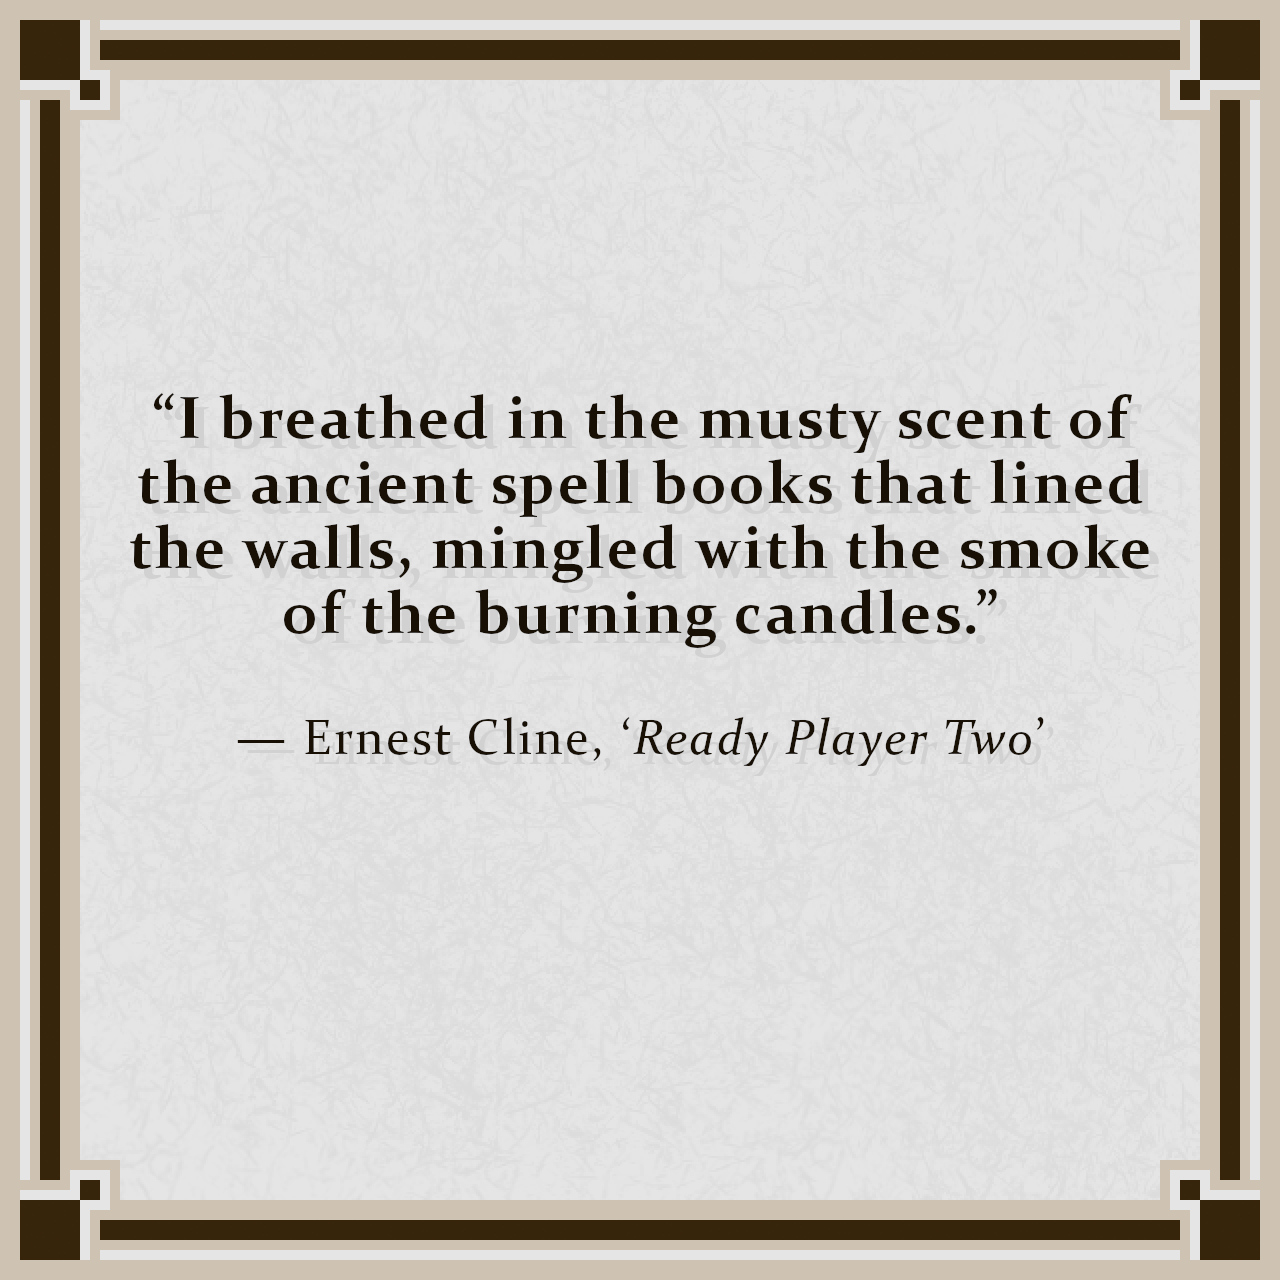 """""""I breathed in the musty scent of the ancient spell books that lined the walls, mingled with the smoke of the burning candles."""" — Ernest Cline, 'Ready Player Two'"""